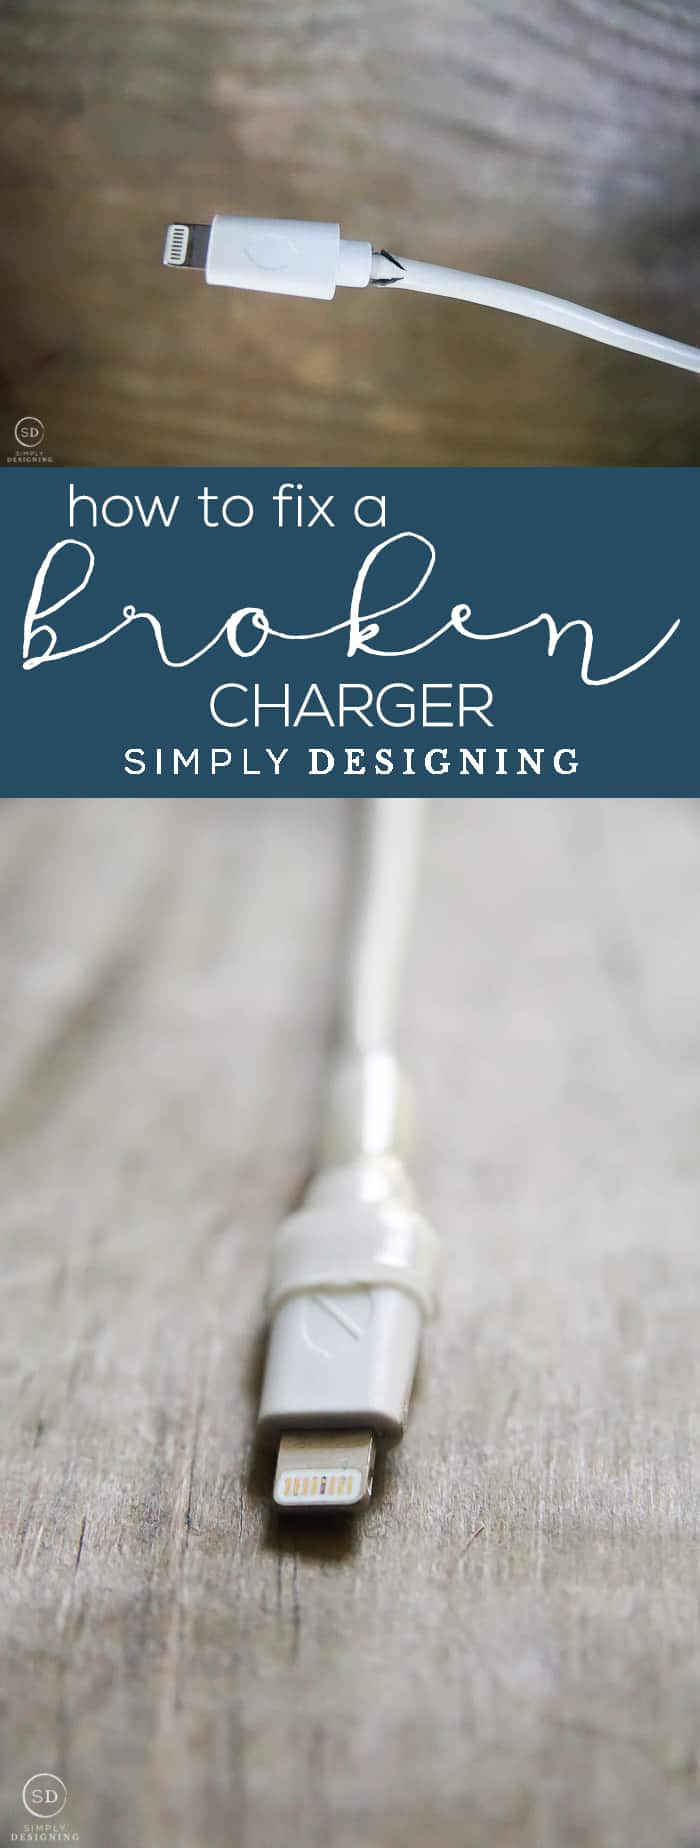 If you have any phone cords that are broken, or ones that are going bad, you need this post about how to fix a broken iPhone charger!